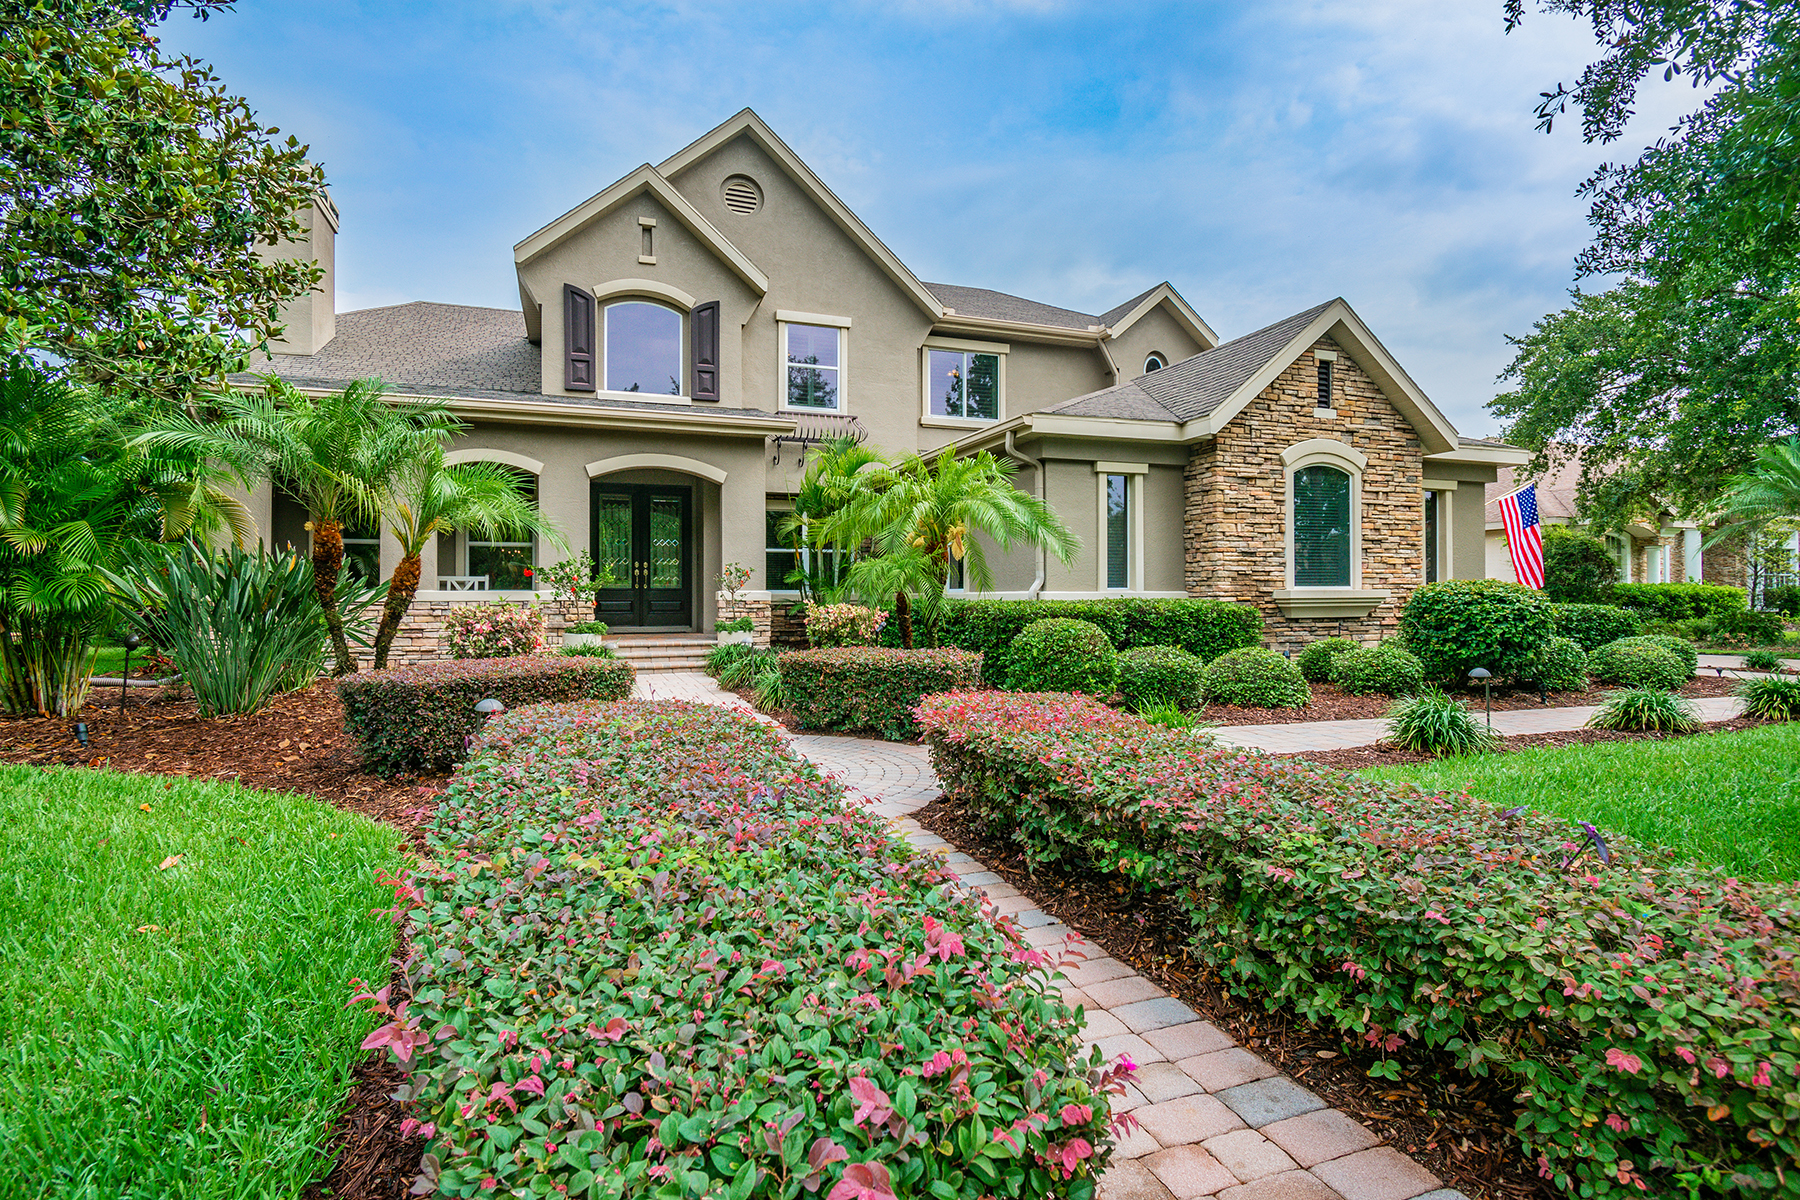 single family homes for Active at FISH HAWK TRAILS 6016 Flatwoods Manor Cir Lithia, Florida 33547 United States